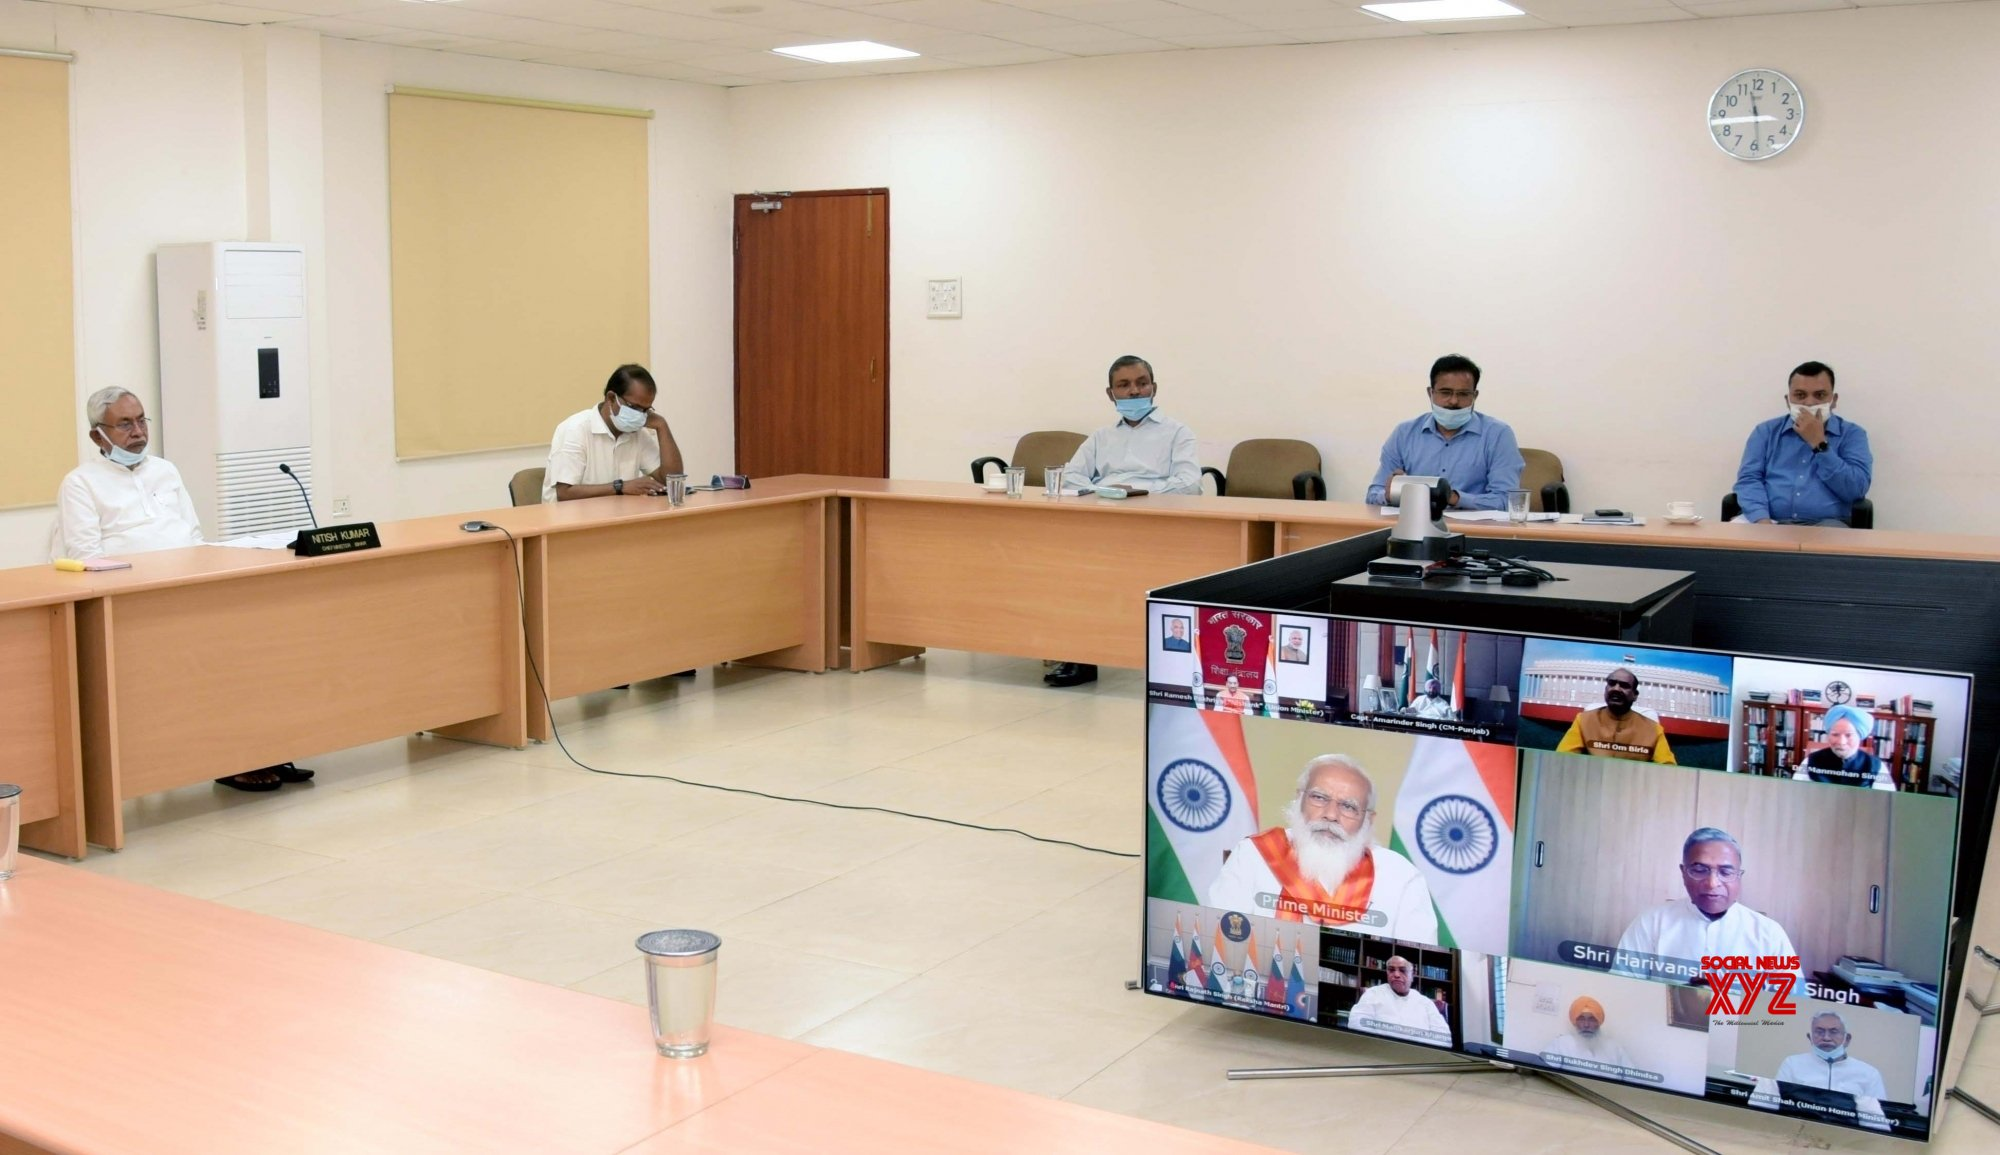 Patna: Bihar Chief Minister Nitish Kumar via video conferencing Prime Minister Narendra Modi attend a meeting of high level committee to commemorate 400th birth anniversary of Sri Guru Tegh Bahadur, In Patna on Thursday April 08,2021. #Gallery